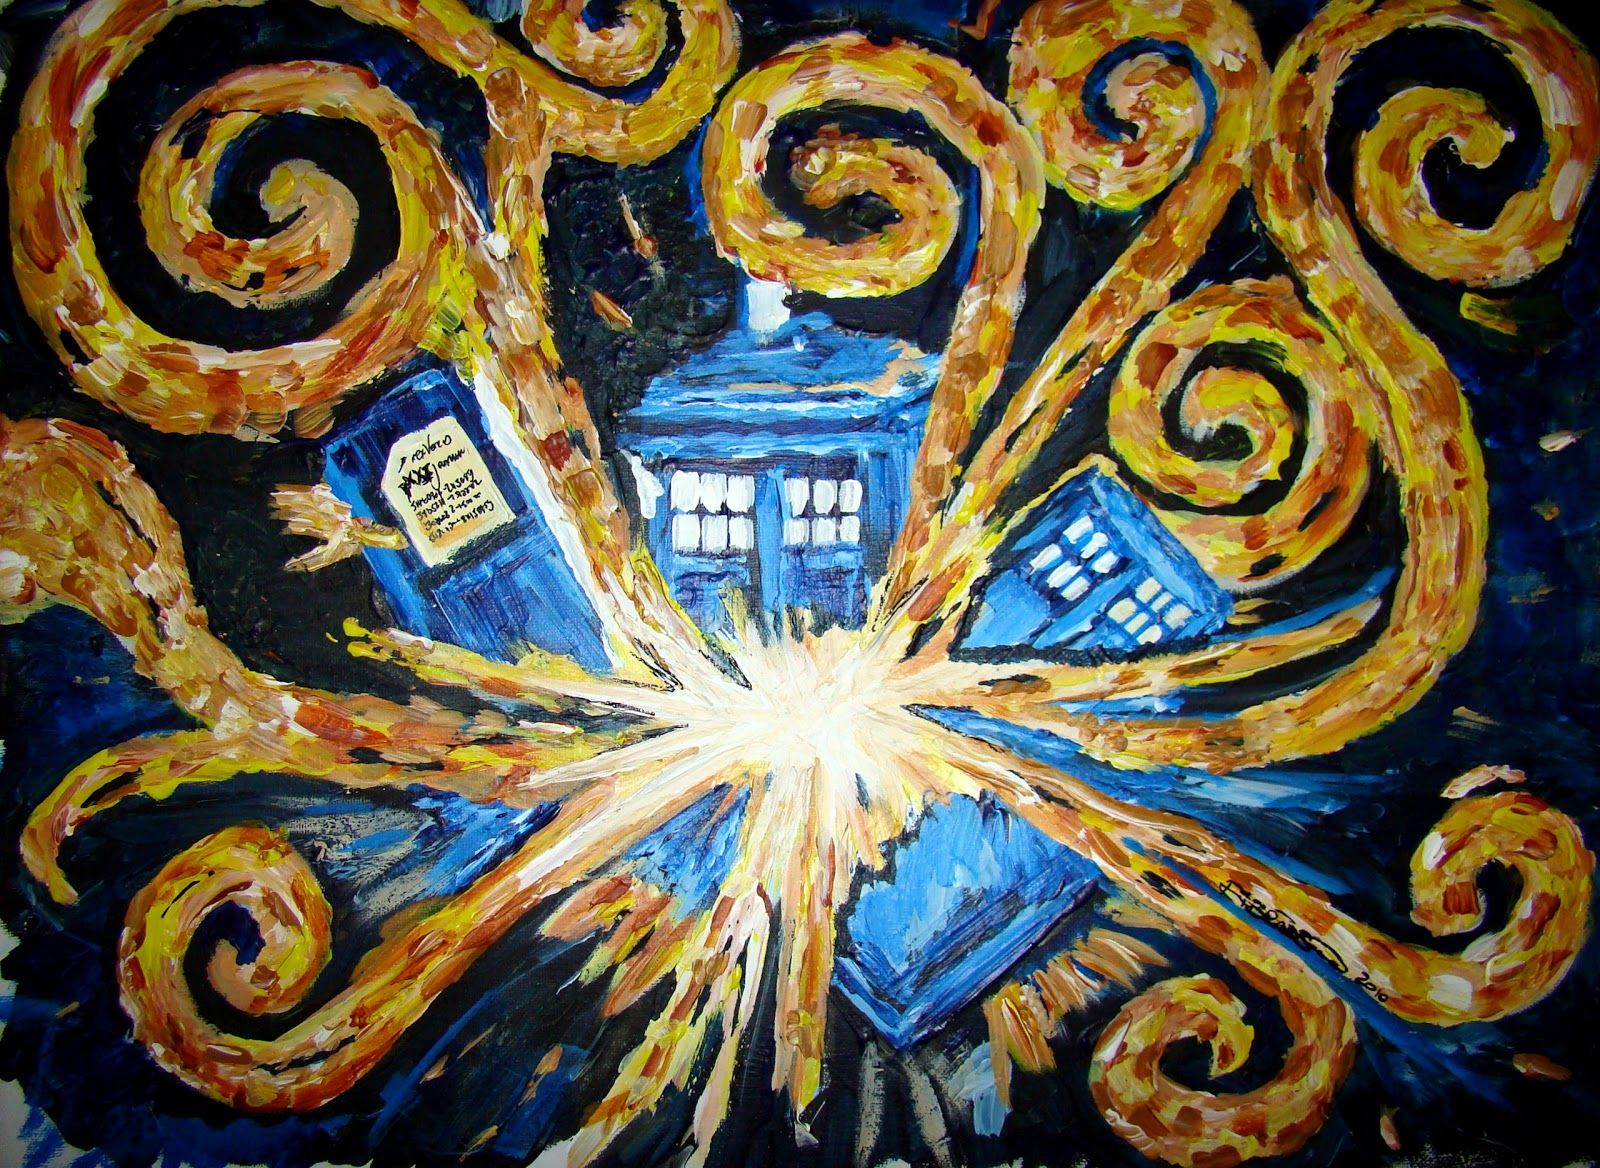 Van Gogh Dr Who Wallpapers Top Free Van Gogh Dr Who Backgrounds